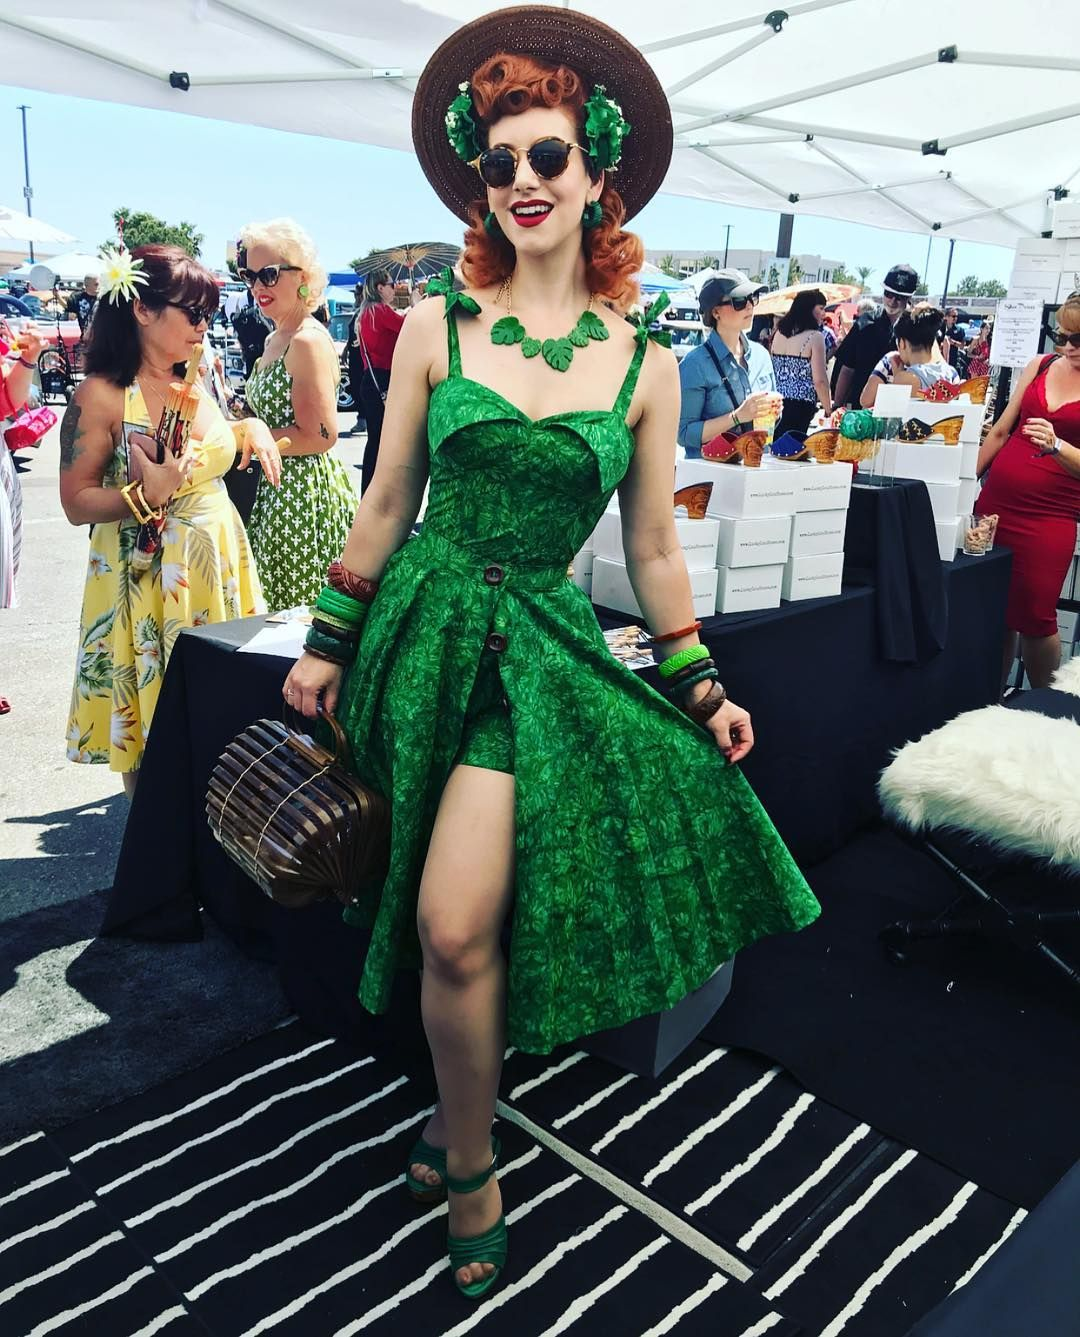 Ella Miss Victory Violet On Instagram How Has It Already Been Two Weeks Since The Viva Las Ve Viva Las Vegas Outfit Vegas Outfit Retro Fashion Vintage